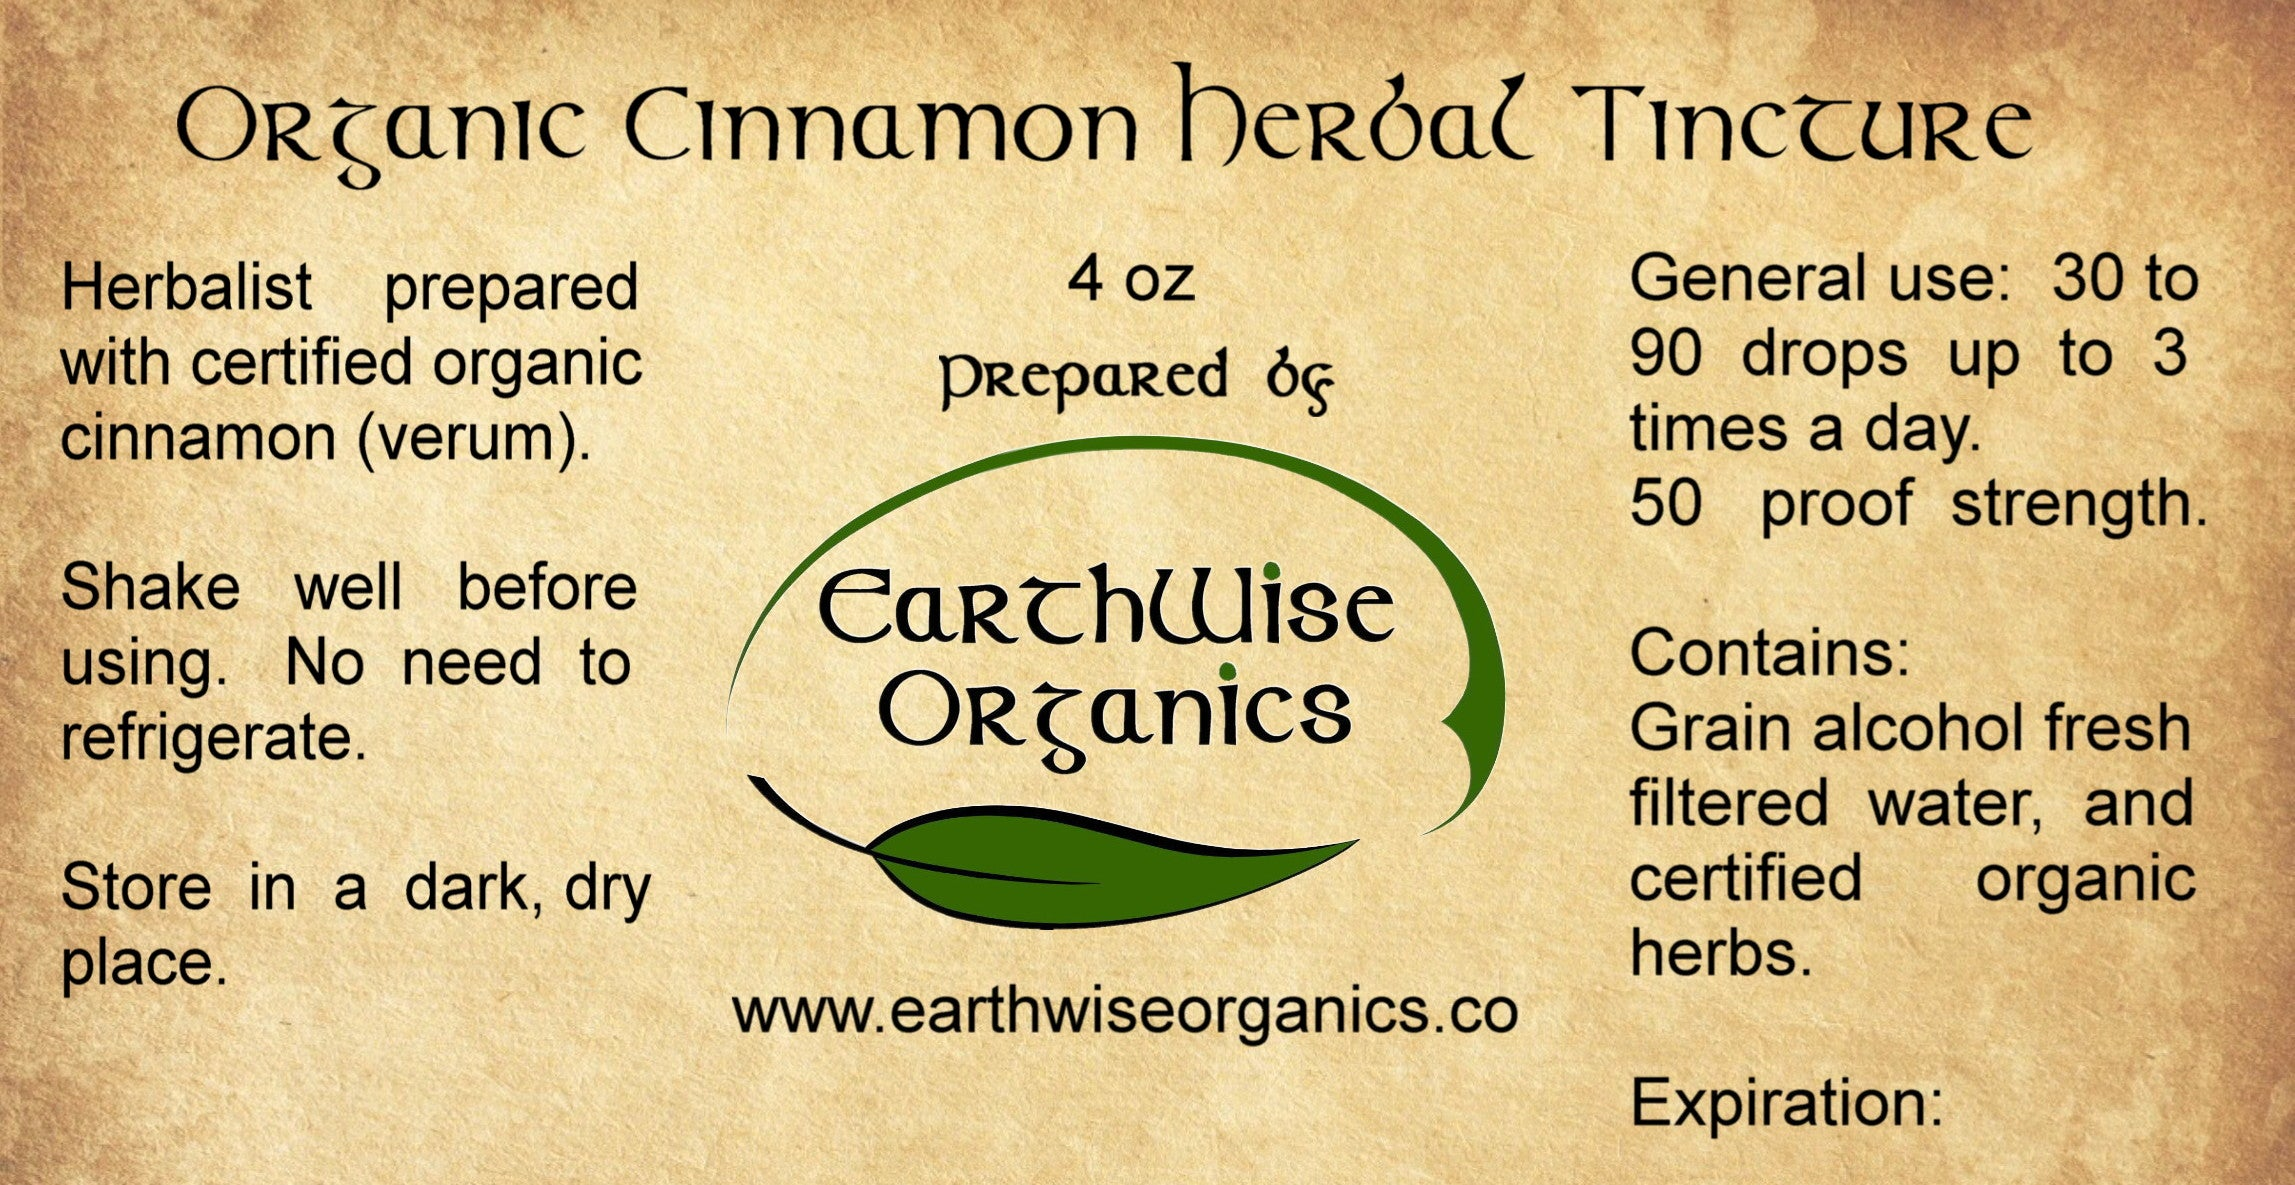 cinnamon organic herbal tincture label